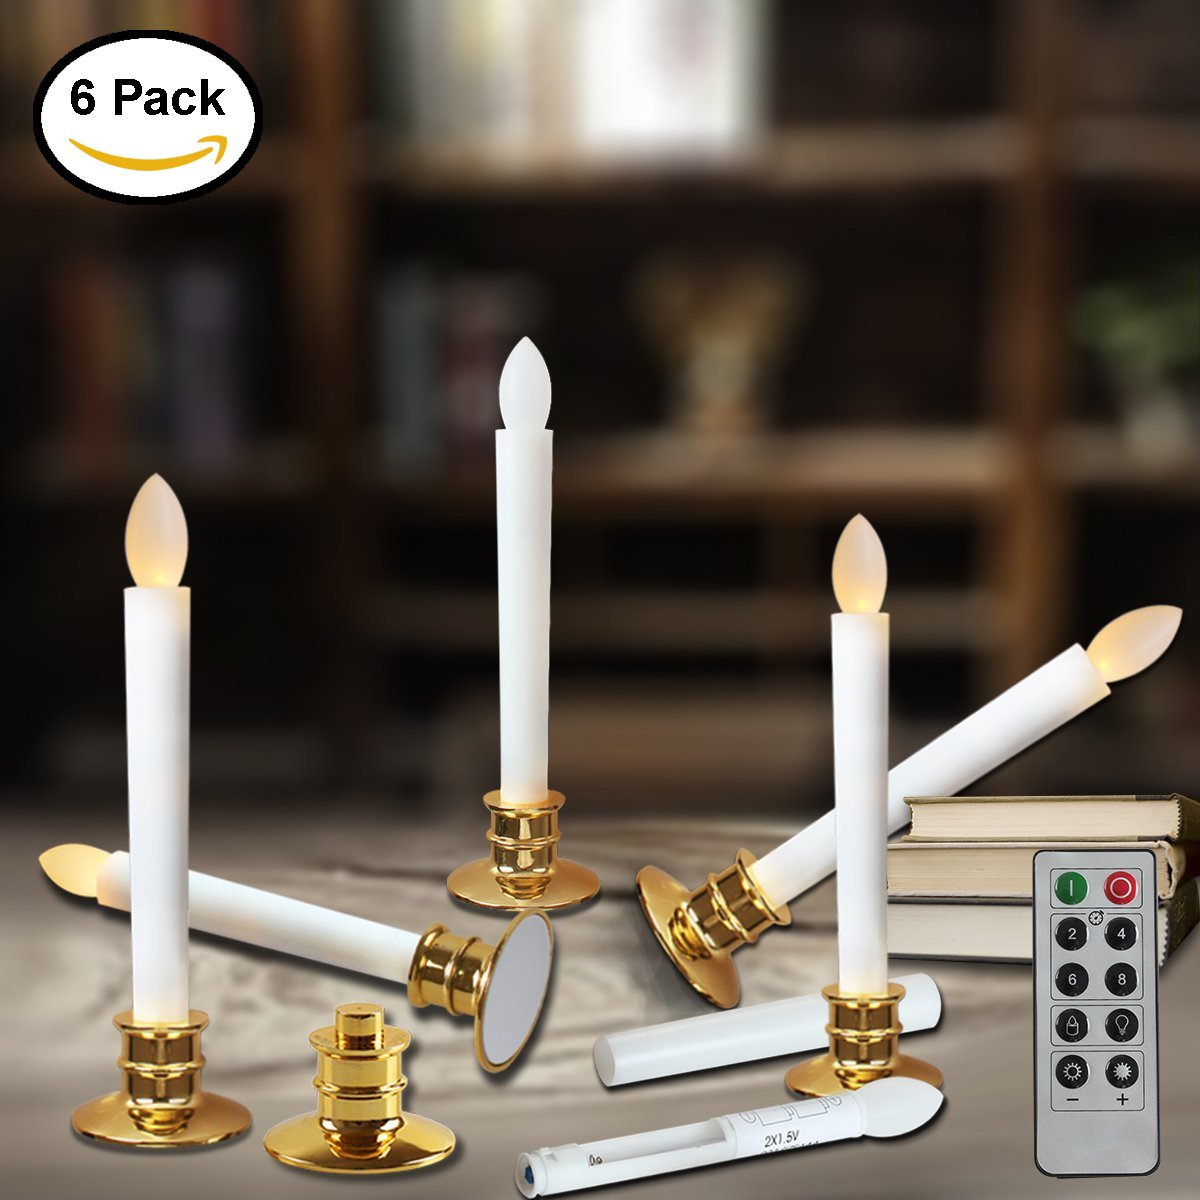 window candles with remote timers battery operated flickering flameless led electric candle lights with removable tapers